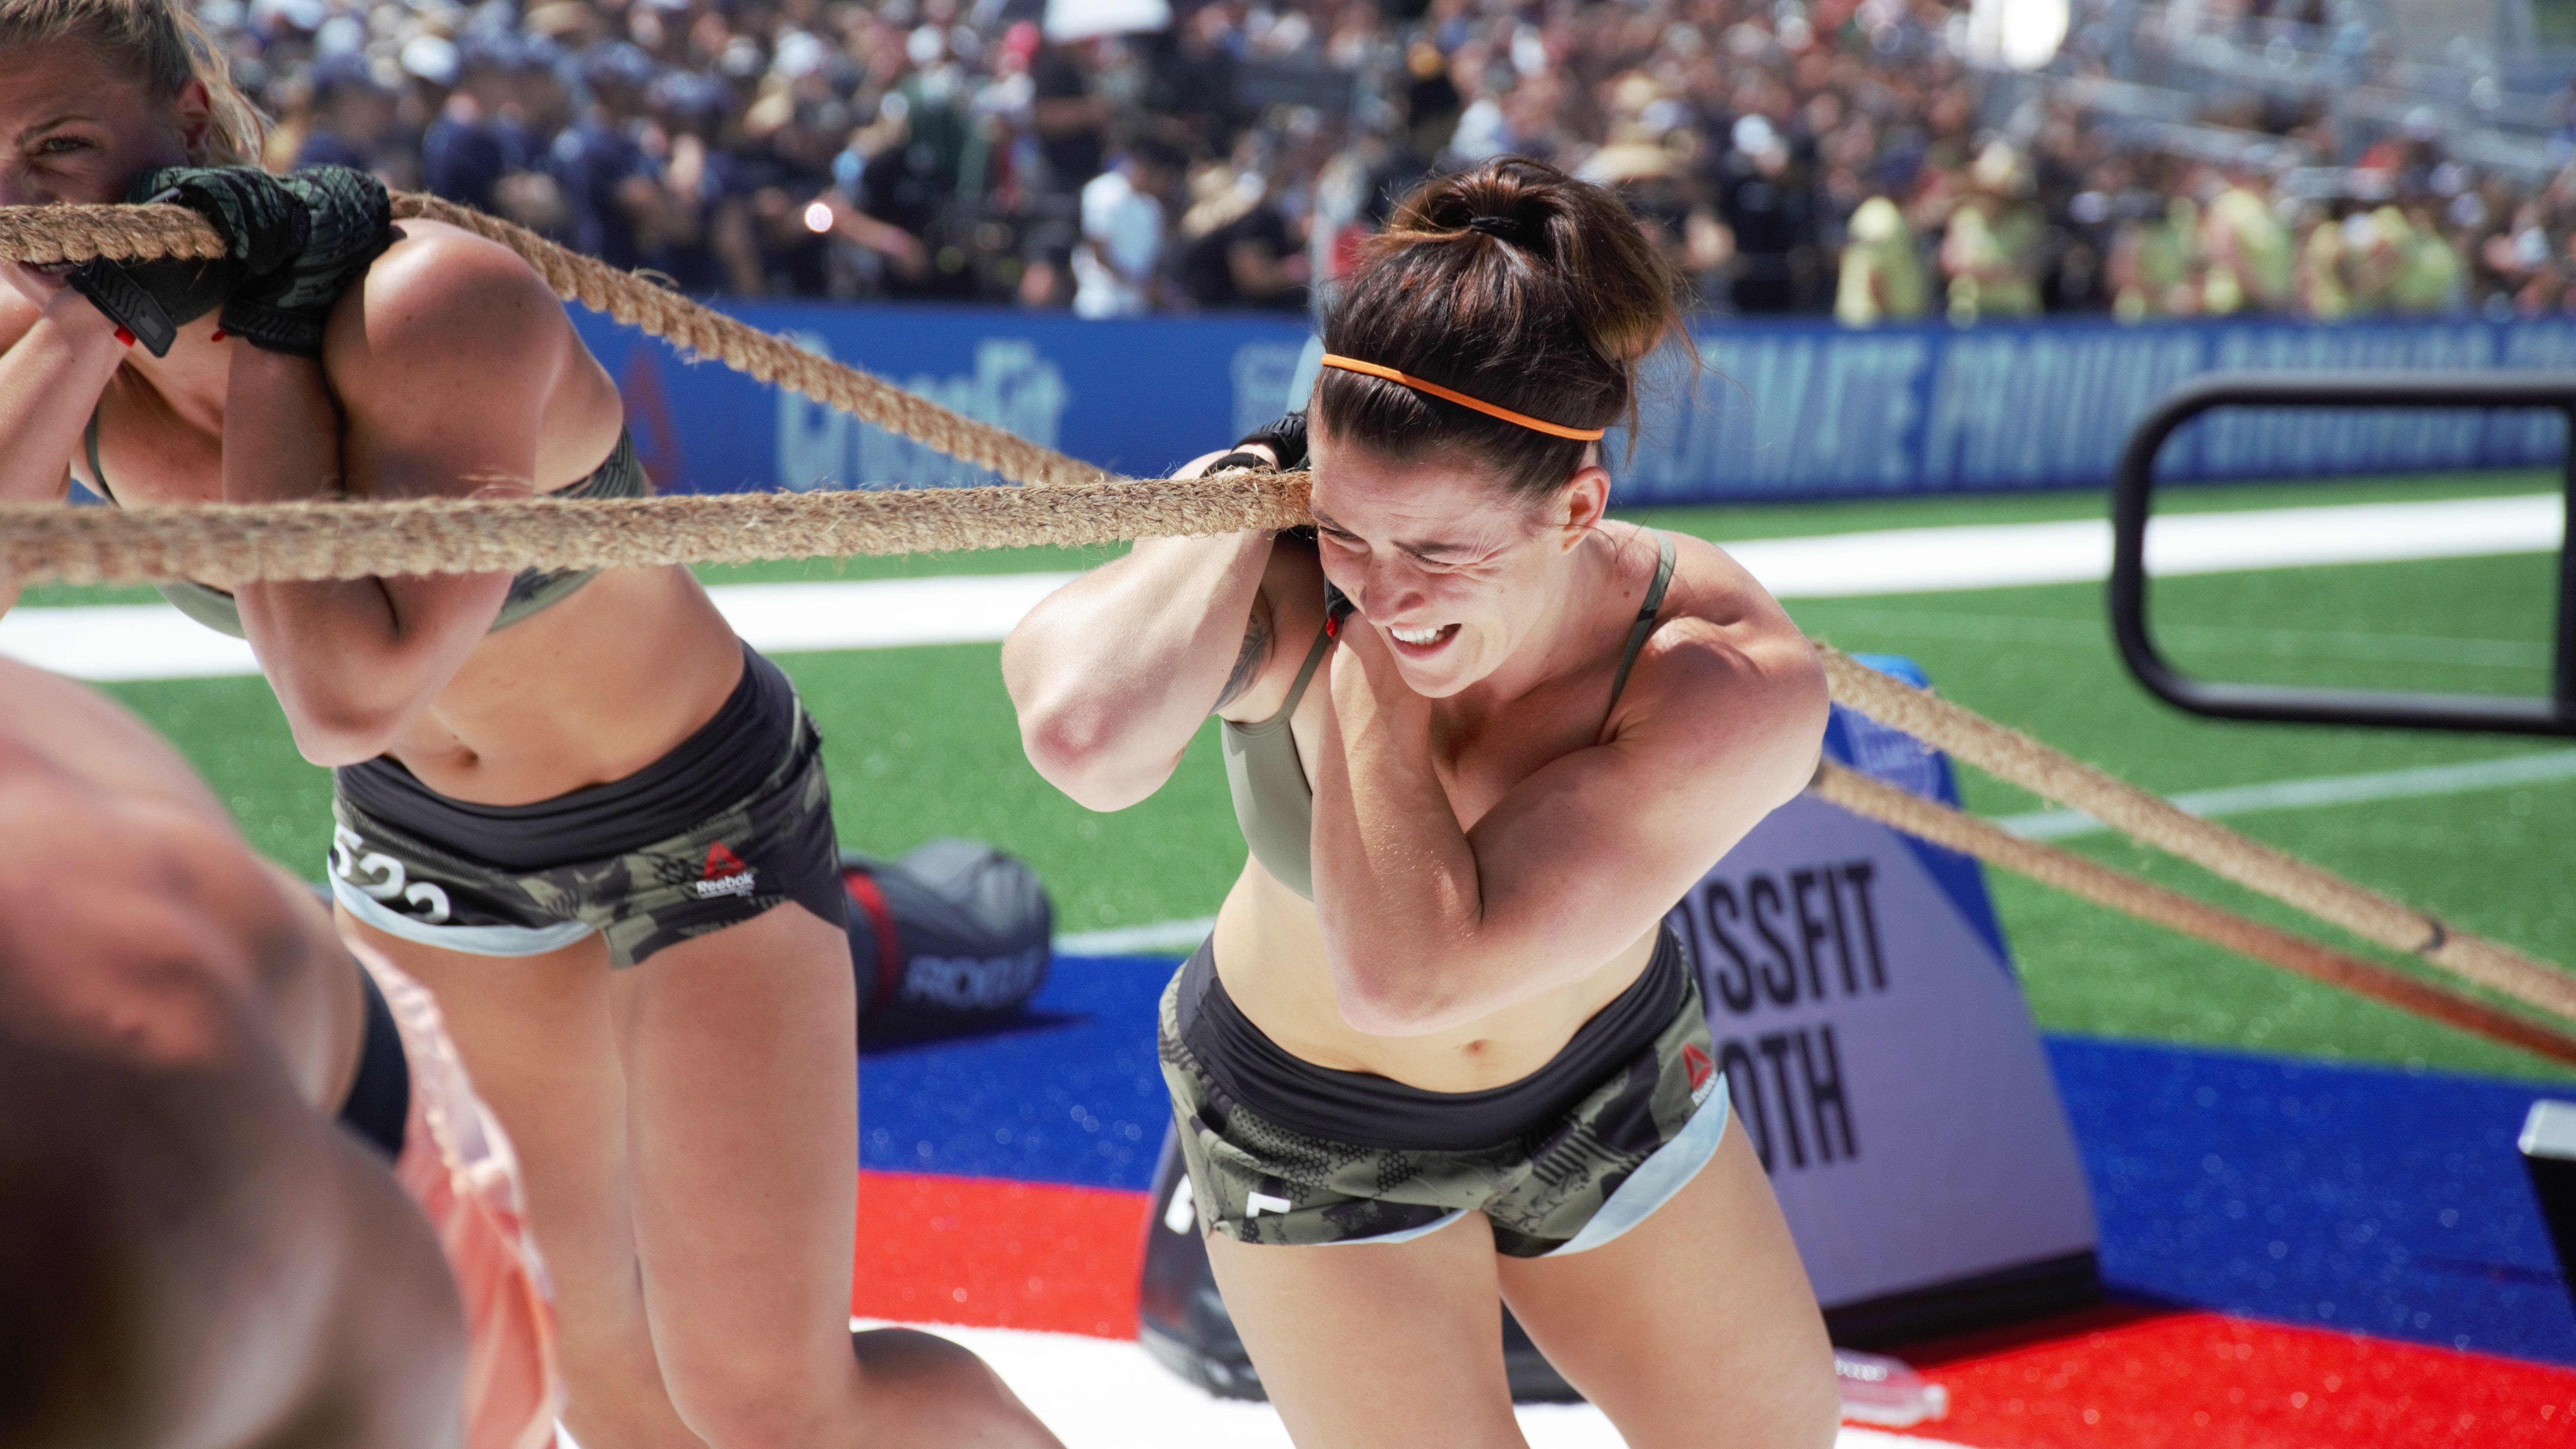 The 2019 CrossFit Games in 30 Awesome Photos